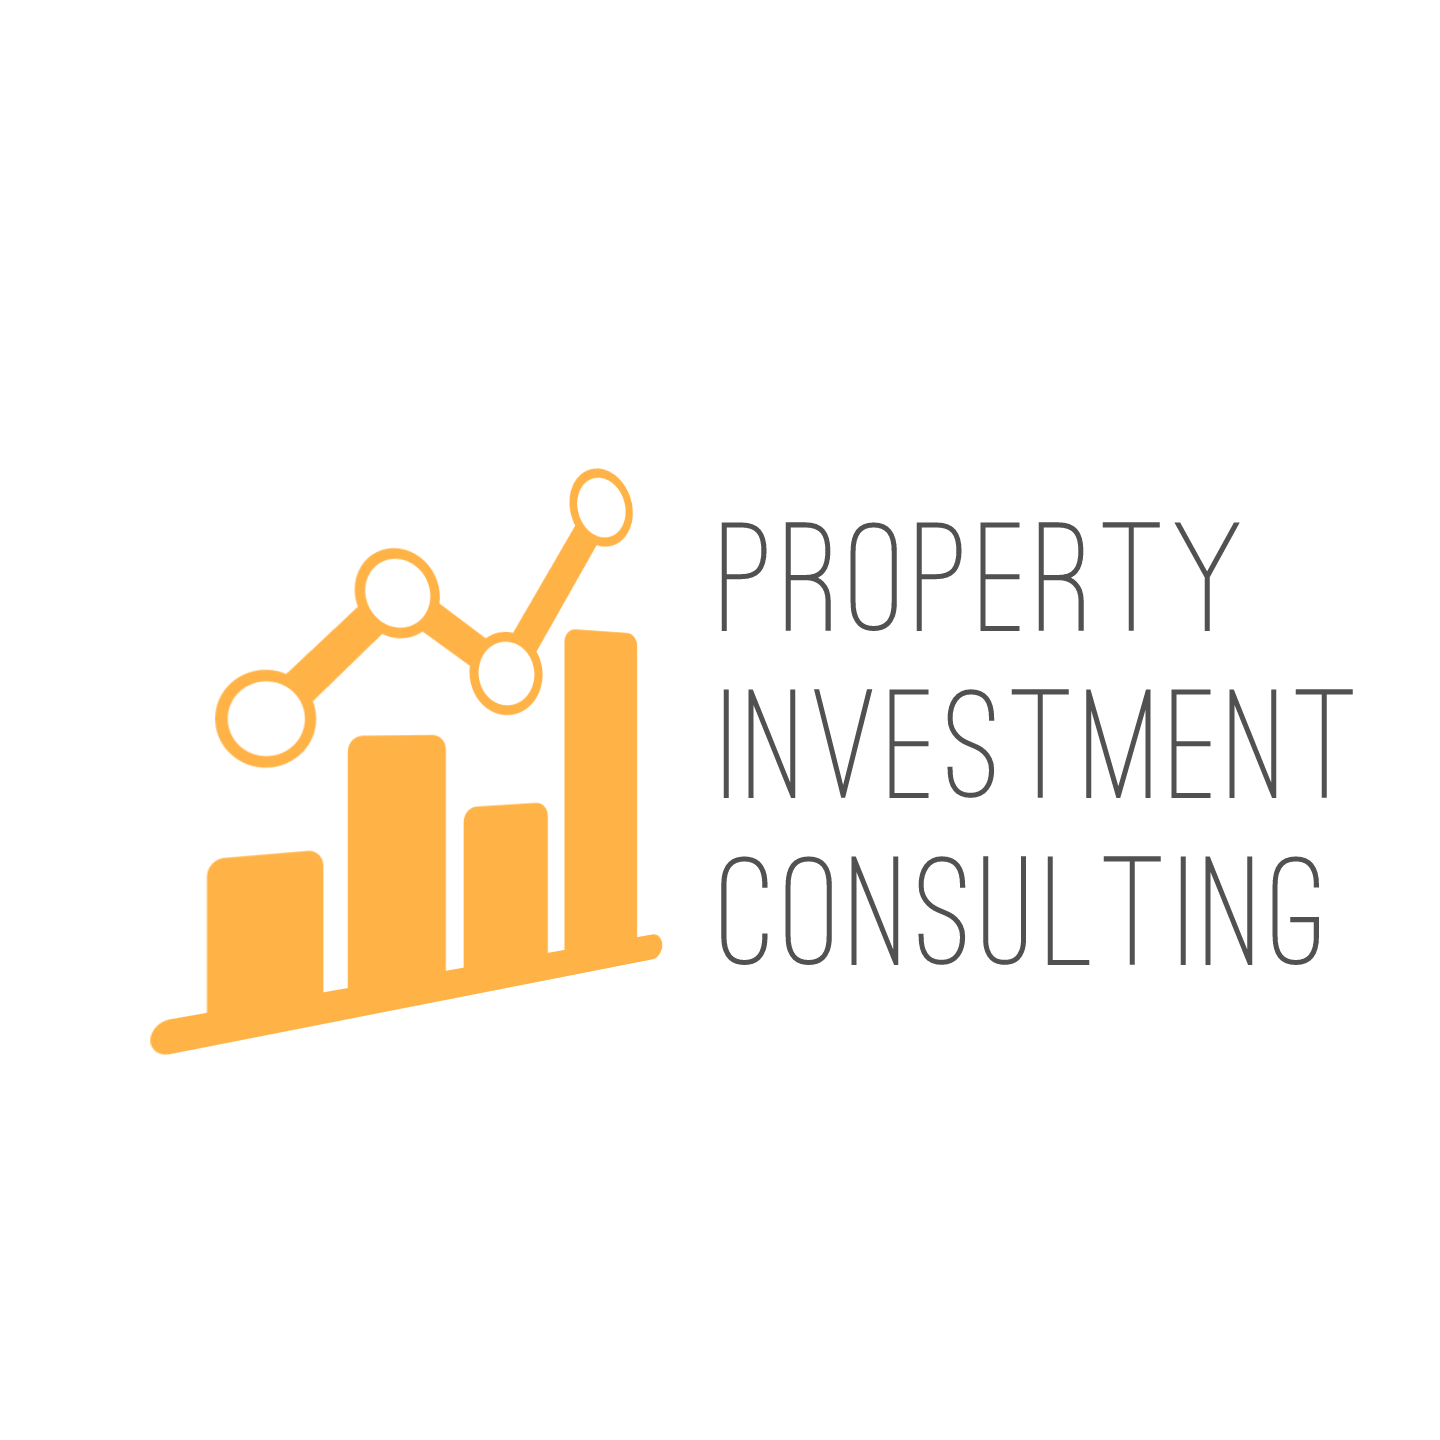 Costs of property investment